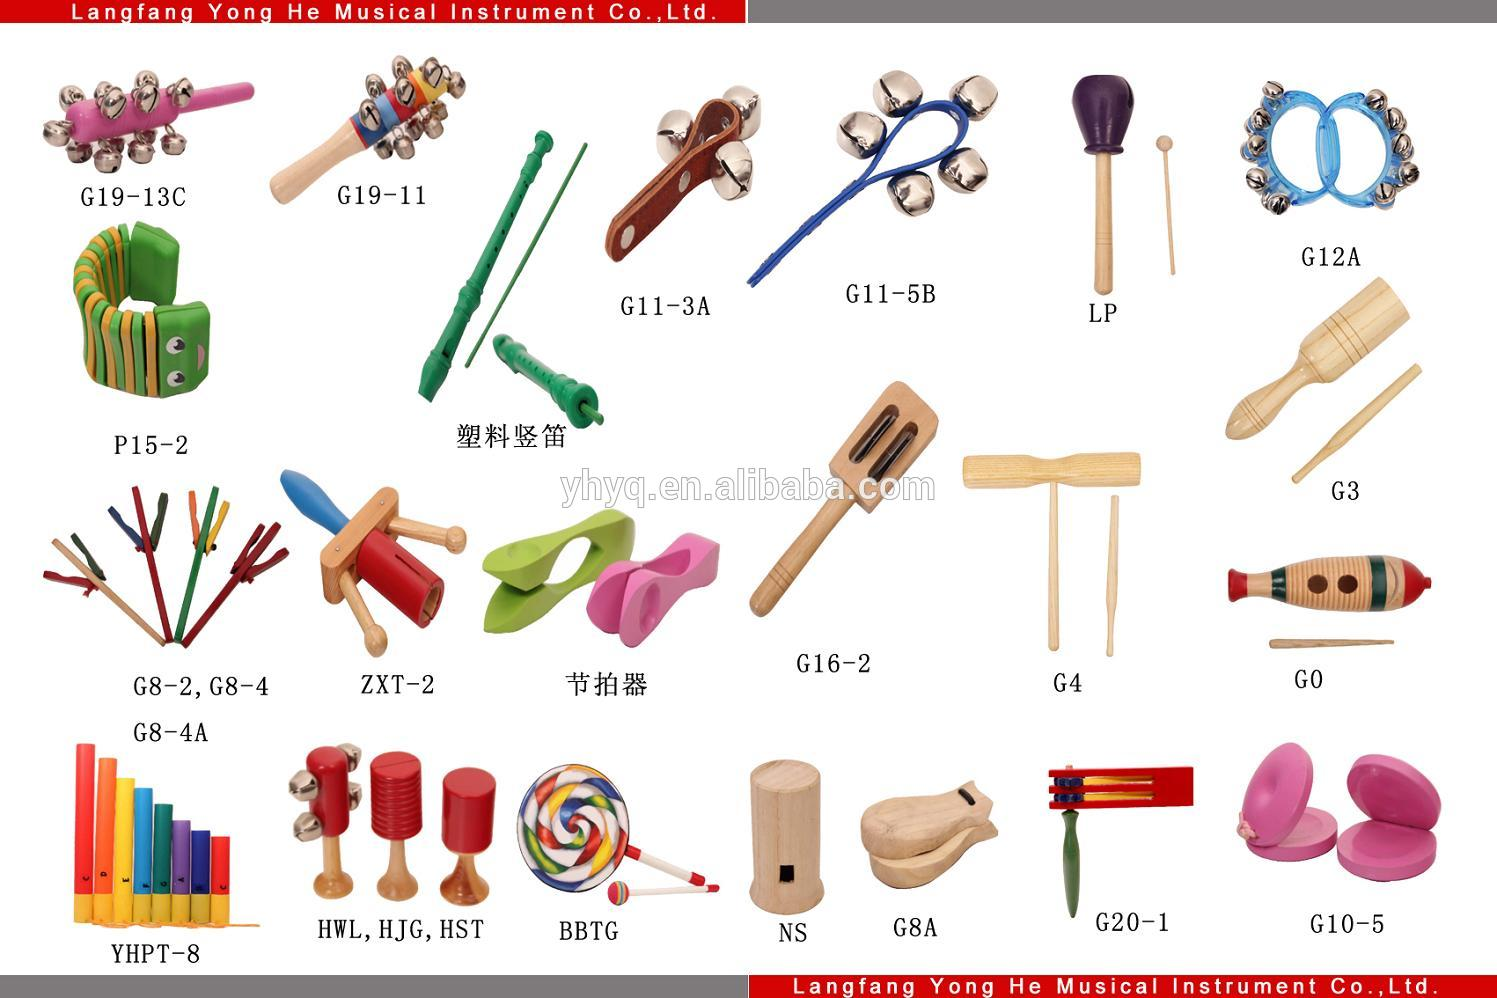 All Percussion Instruments Orff Instruments Children